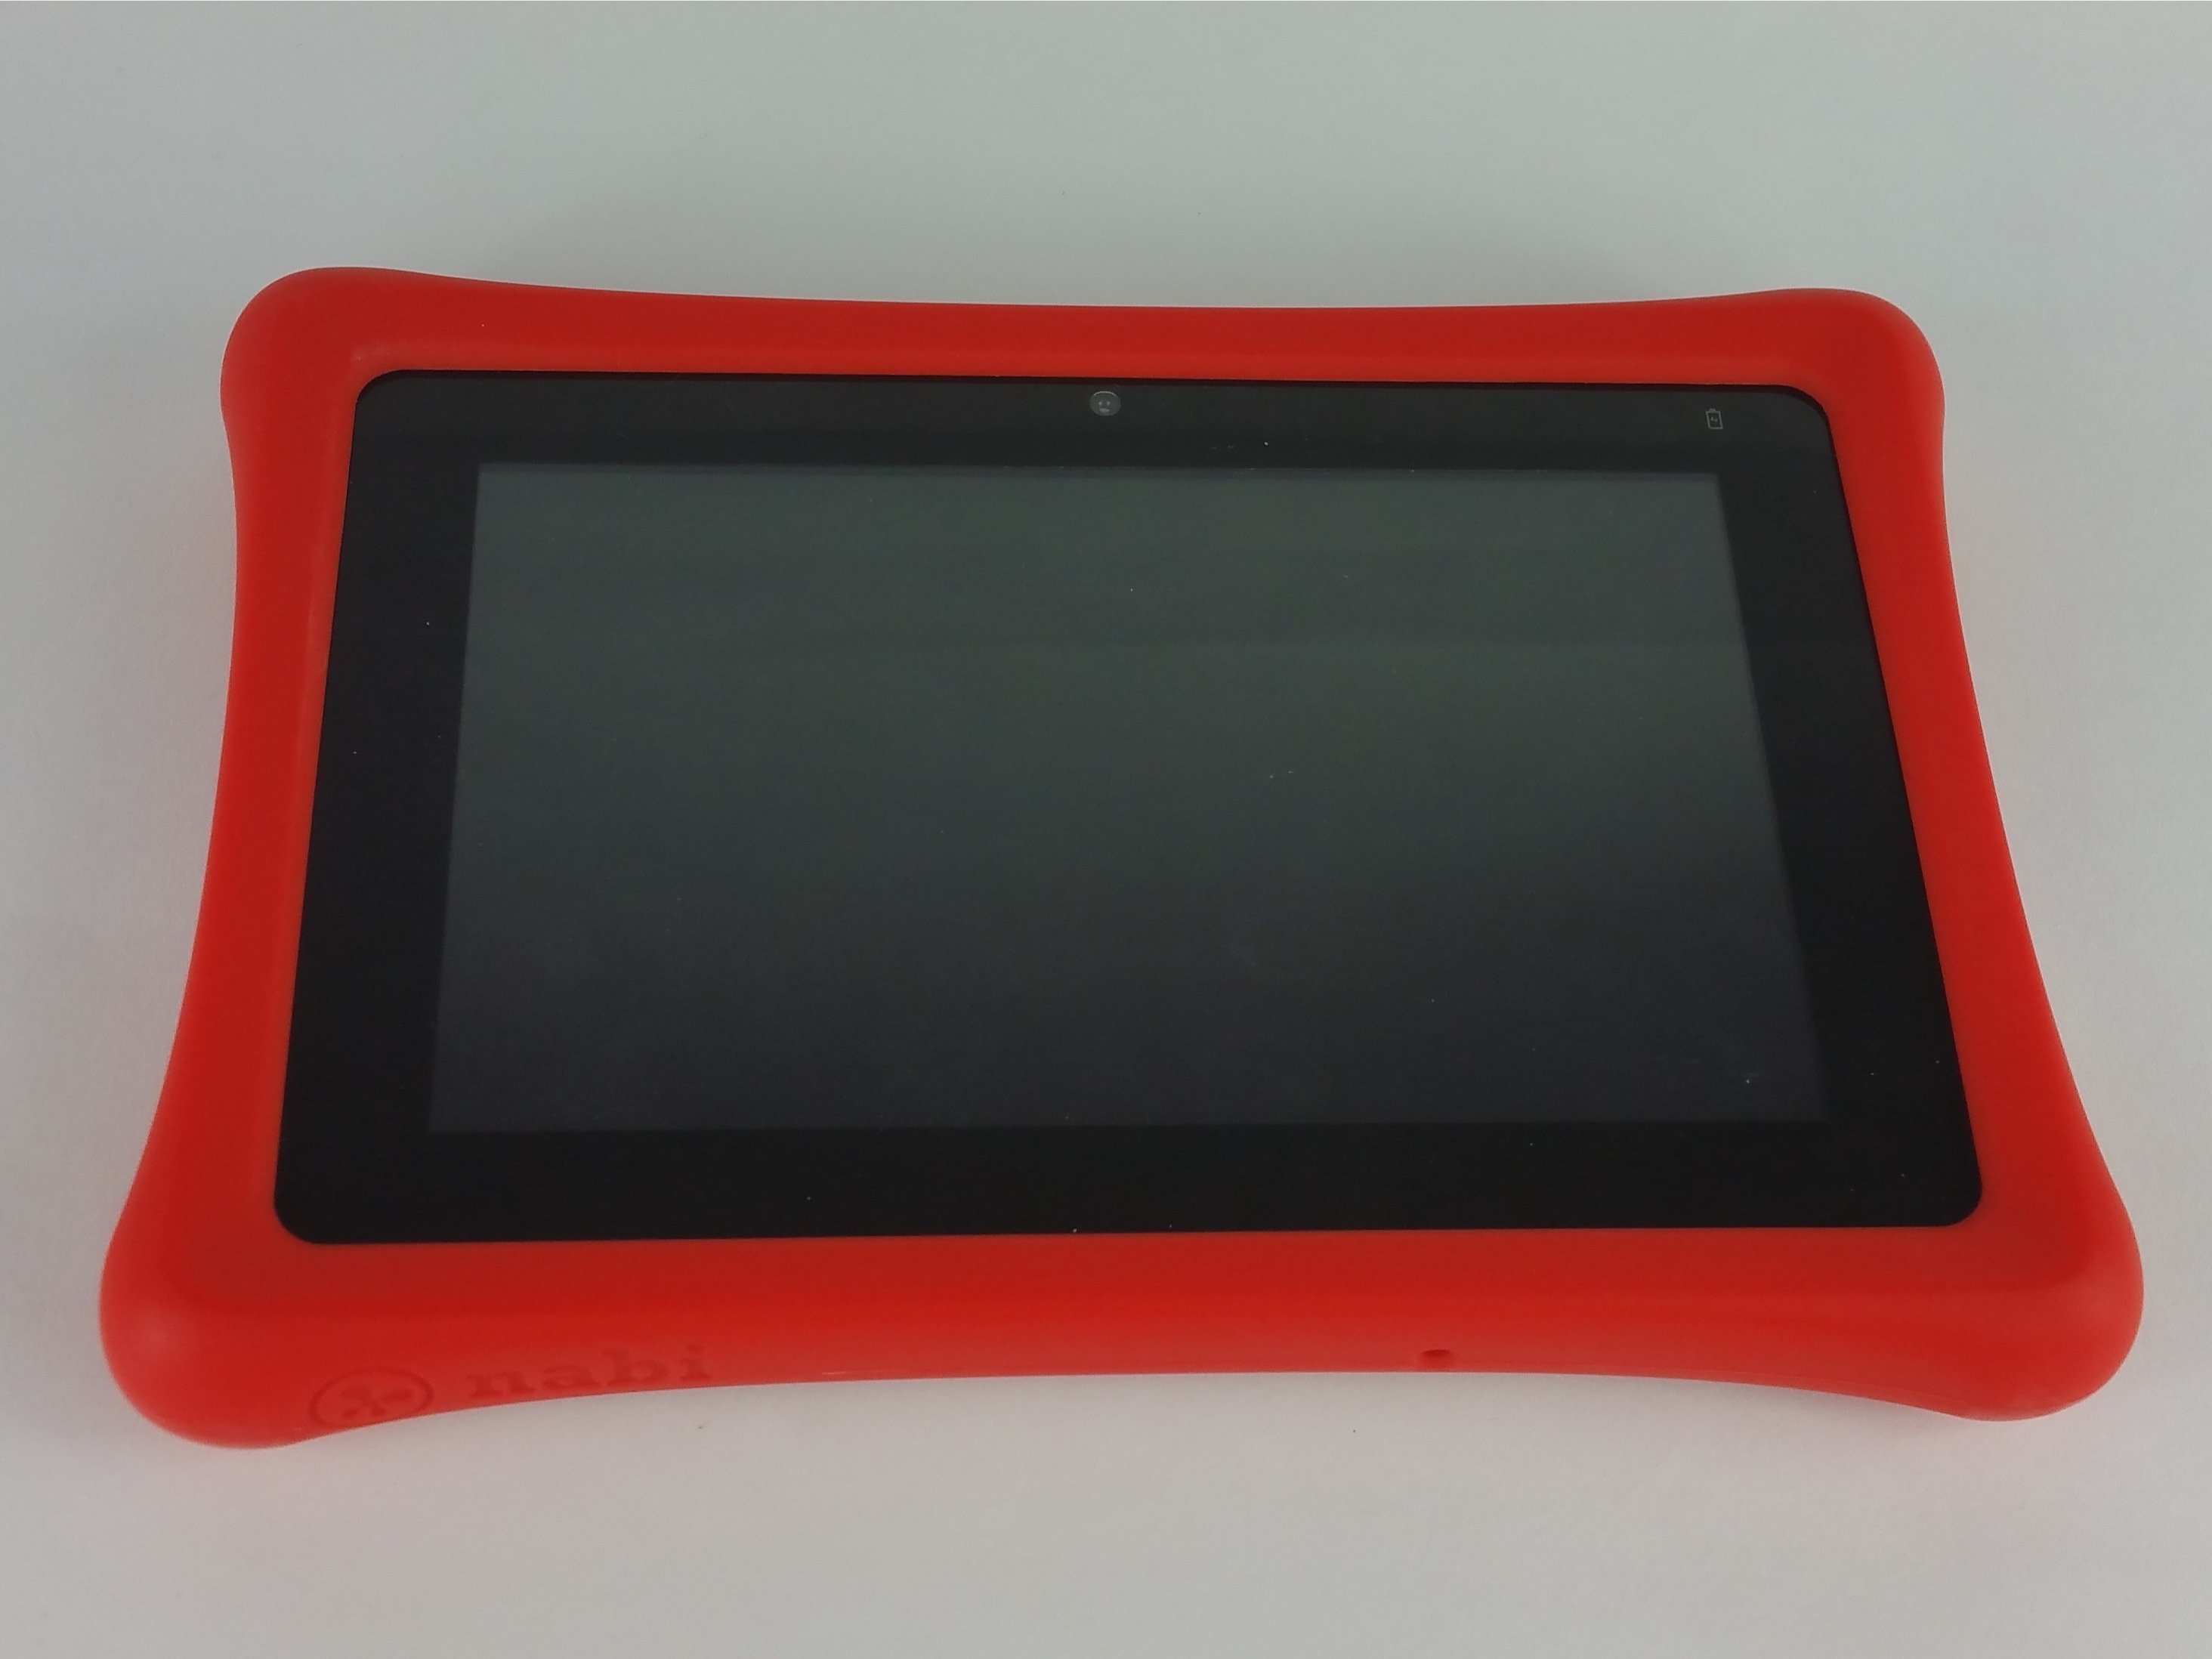 """Nabi 2S Tablet 7/"""" PC 2 SNB02-NV7A REPLACEMENT BATTERY"""